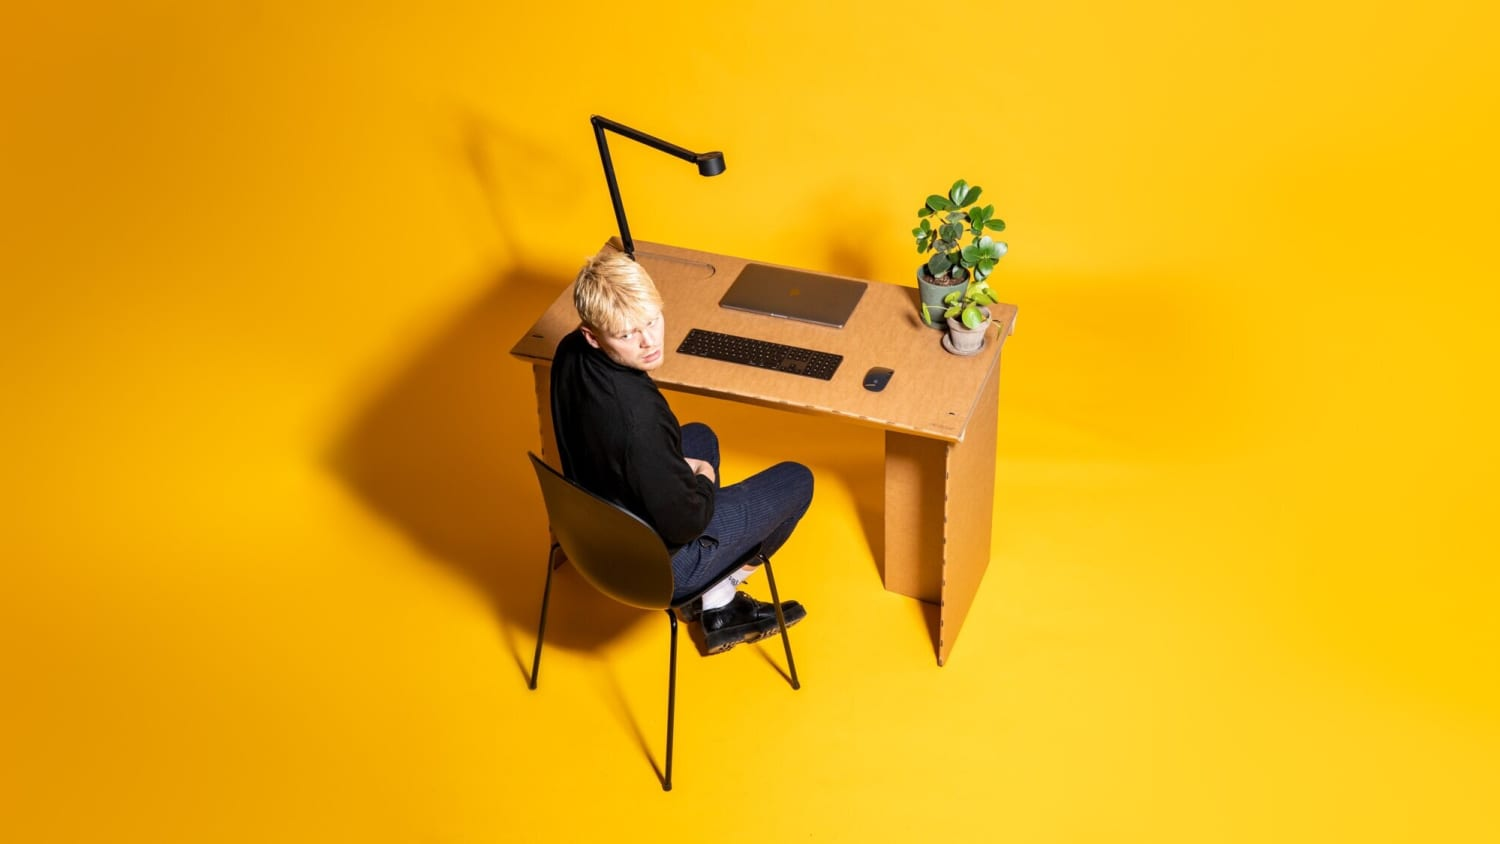 Need a Desk? You Can Buy (or Build!) One Made of Cardboard